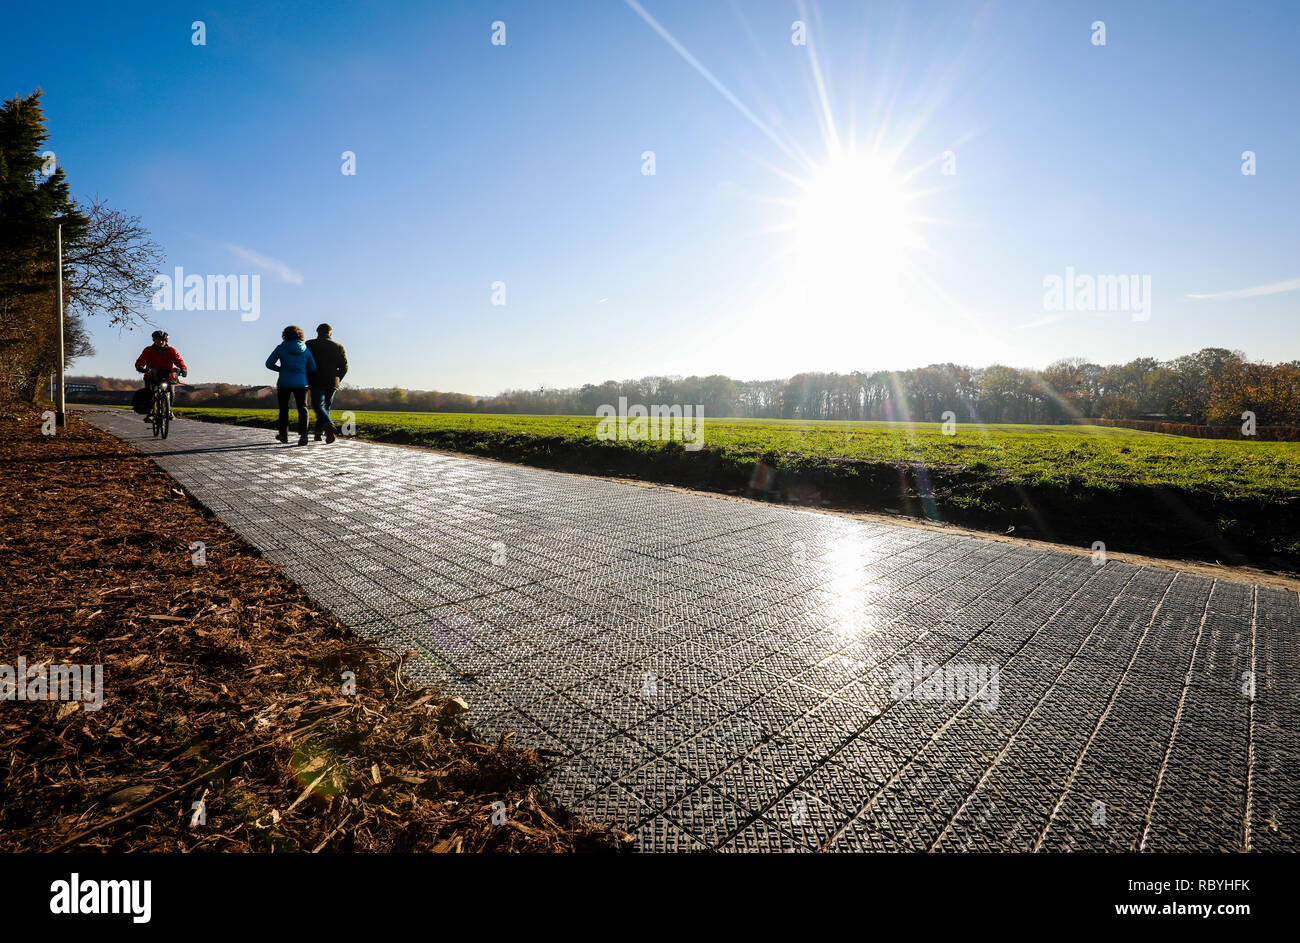 Germany's first solar energy cycle path, the 90 metre long test track from start-up Solmove is expected to deliver around 16,000 kilowatt hours of ele - Stock Image